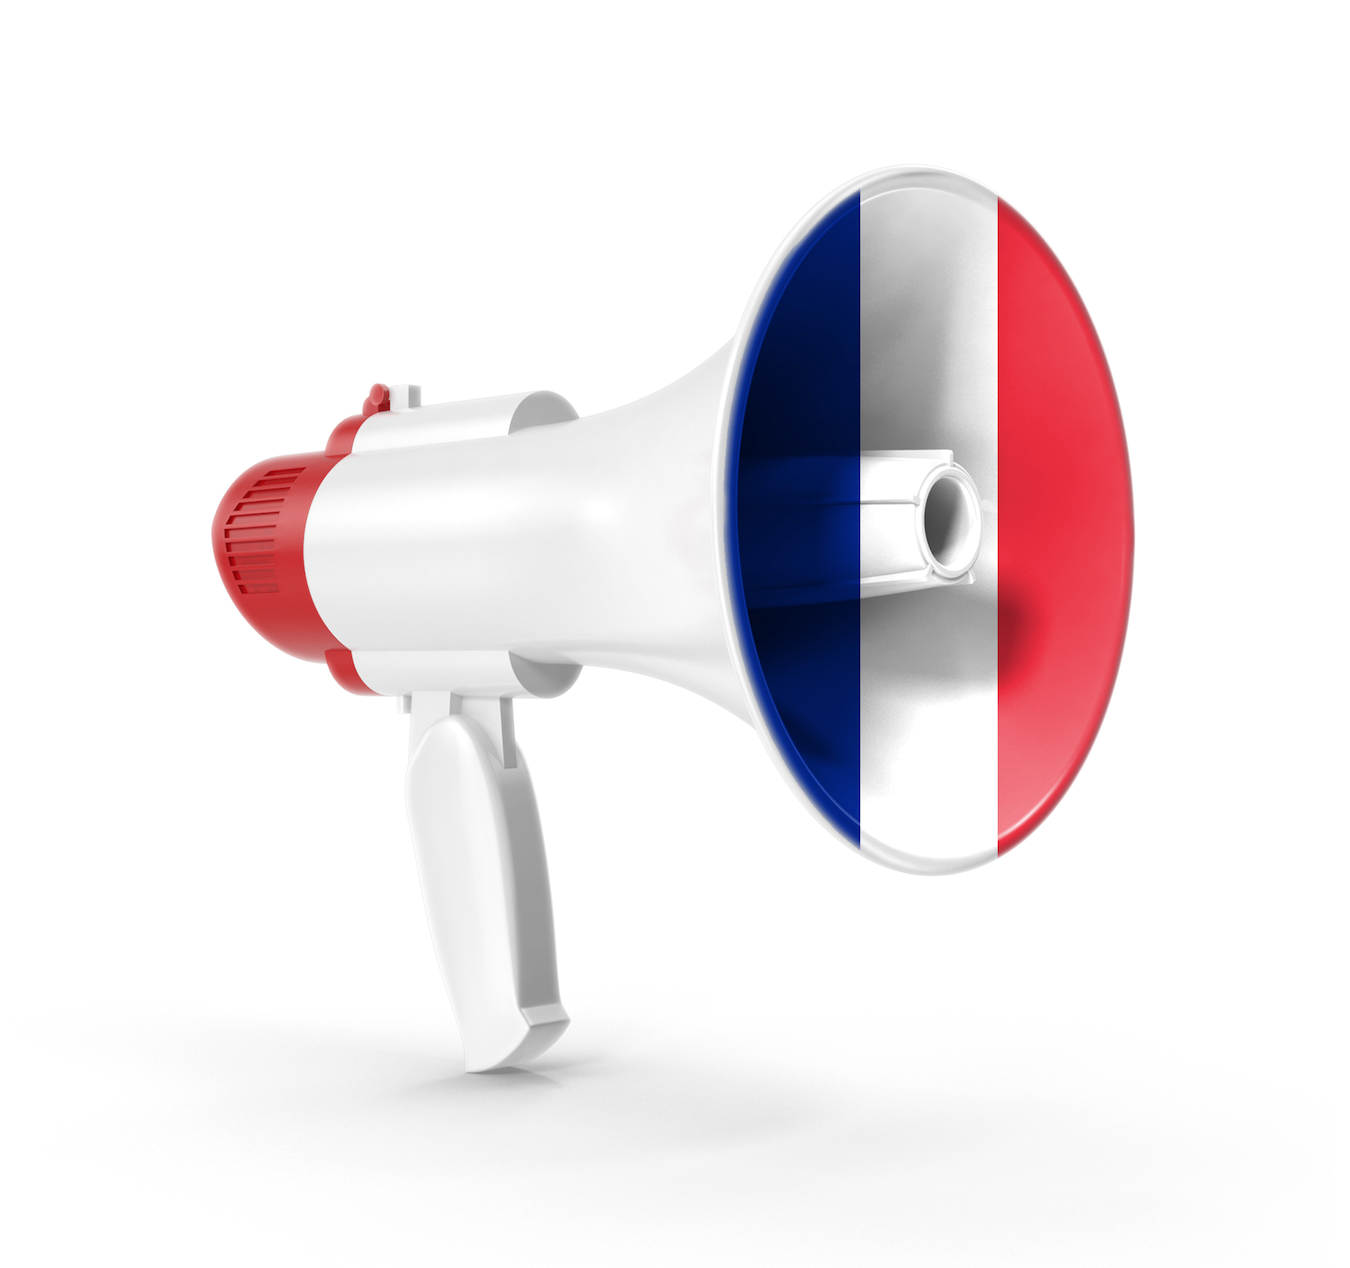 Megaphone in the colors of the French flag